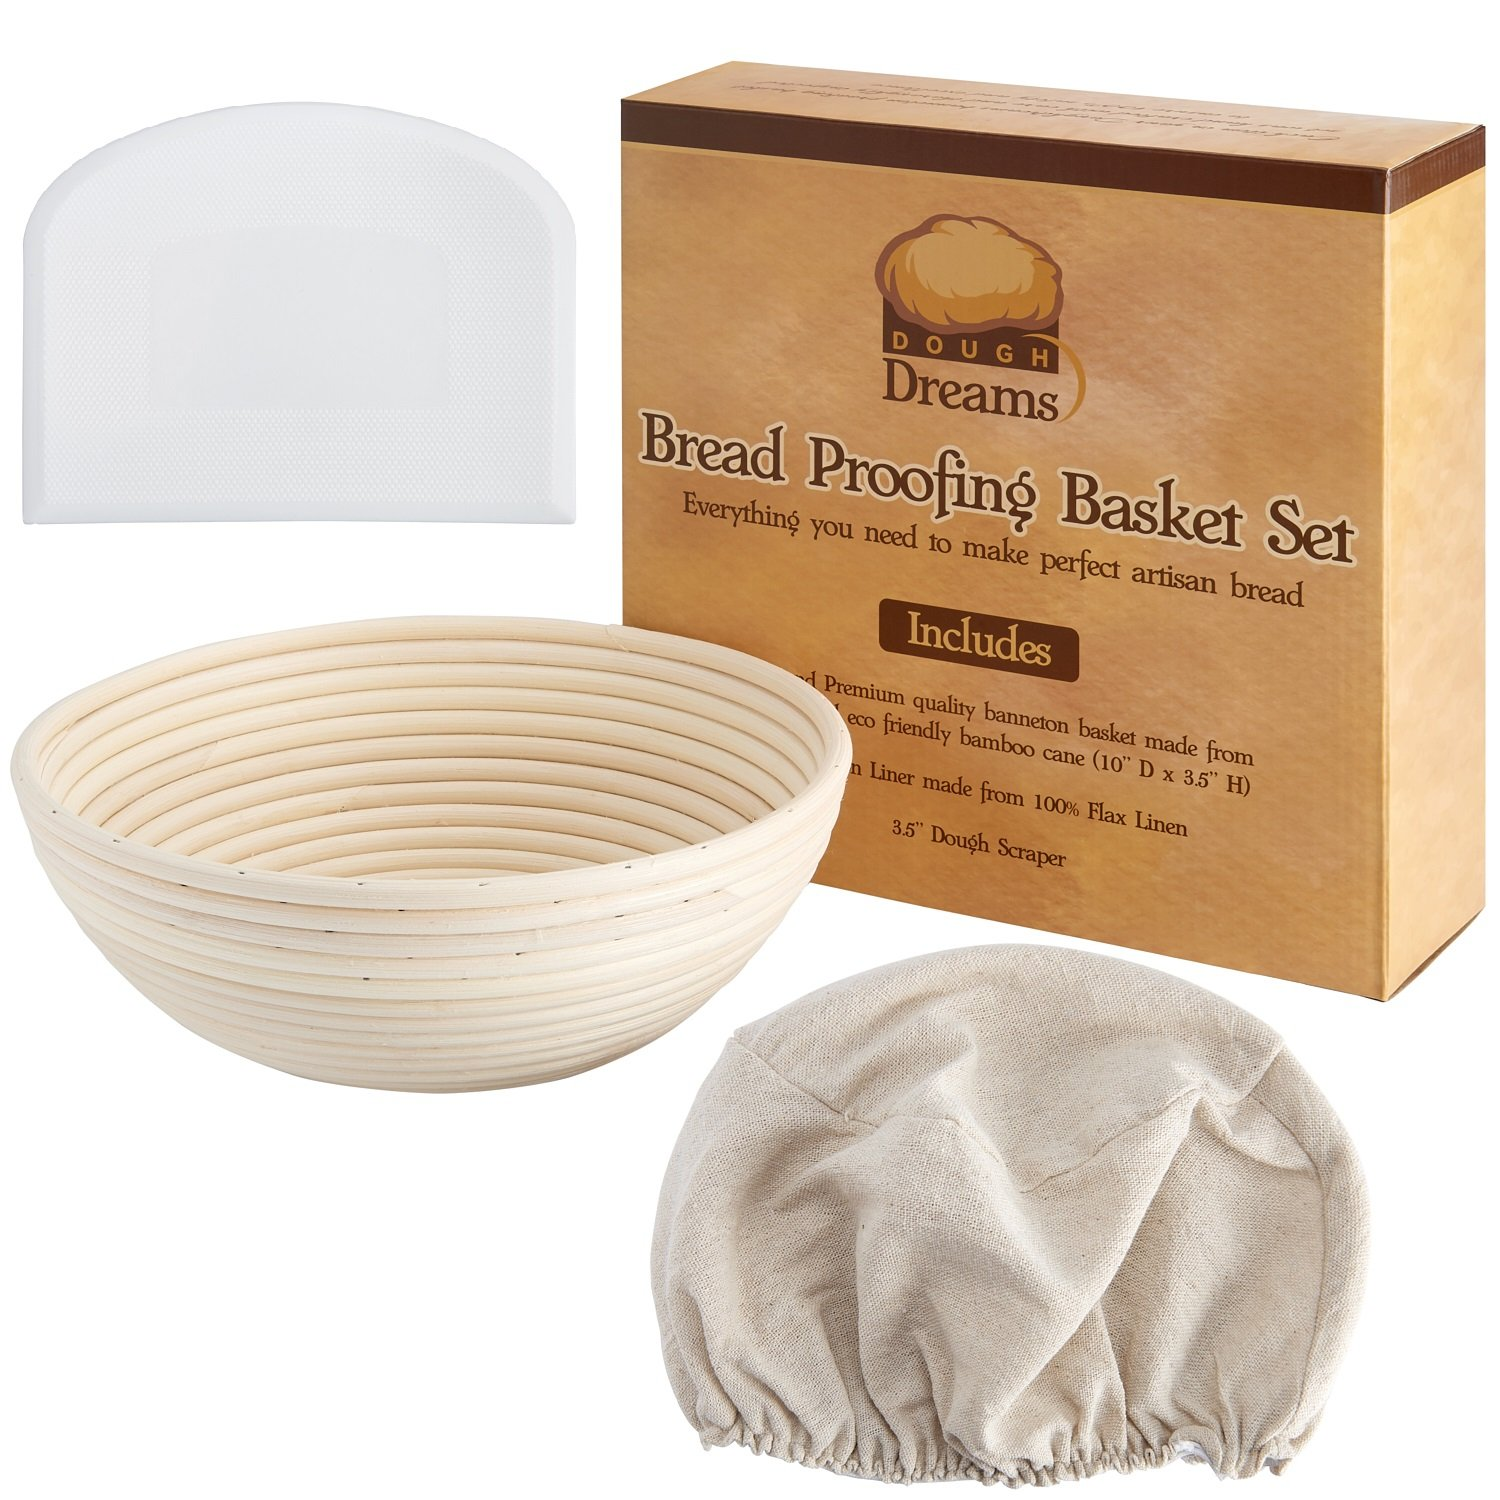 Bread Proofing Basket 10 Inch Set | Large Rattan Banneton w/ Dough Scraper, Linen Liner and Helpful Instructions | Perfect for New Bakers | For Artisan Boule Sourdough Bread Making